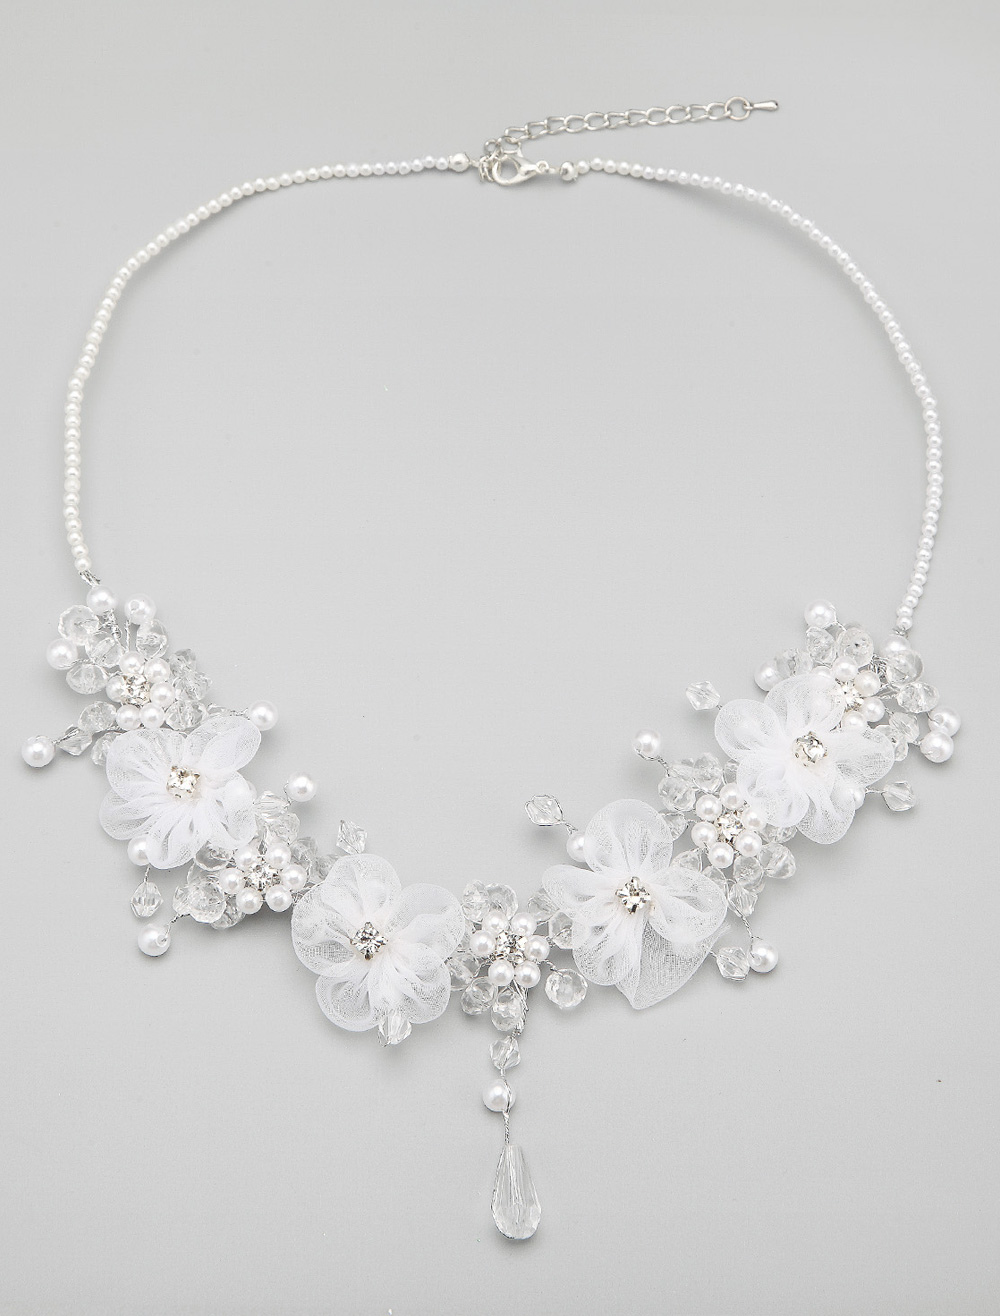 Handmade Pearl And Floral Necklace For Bride